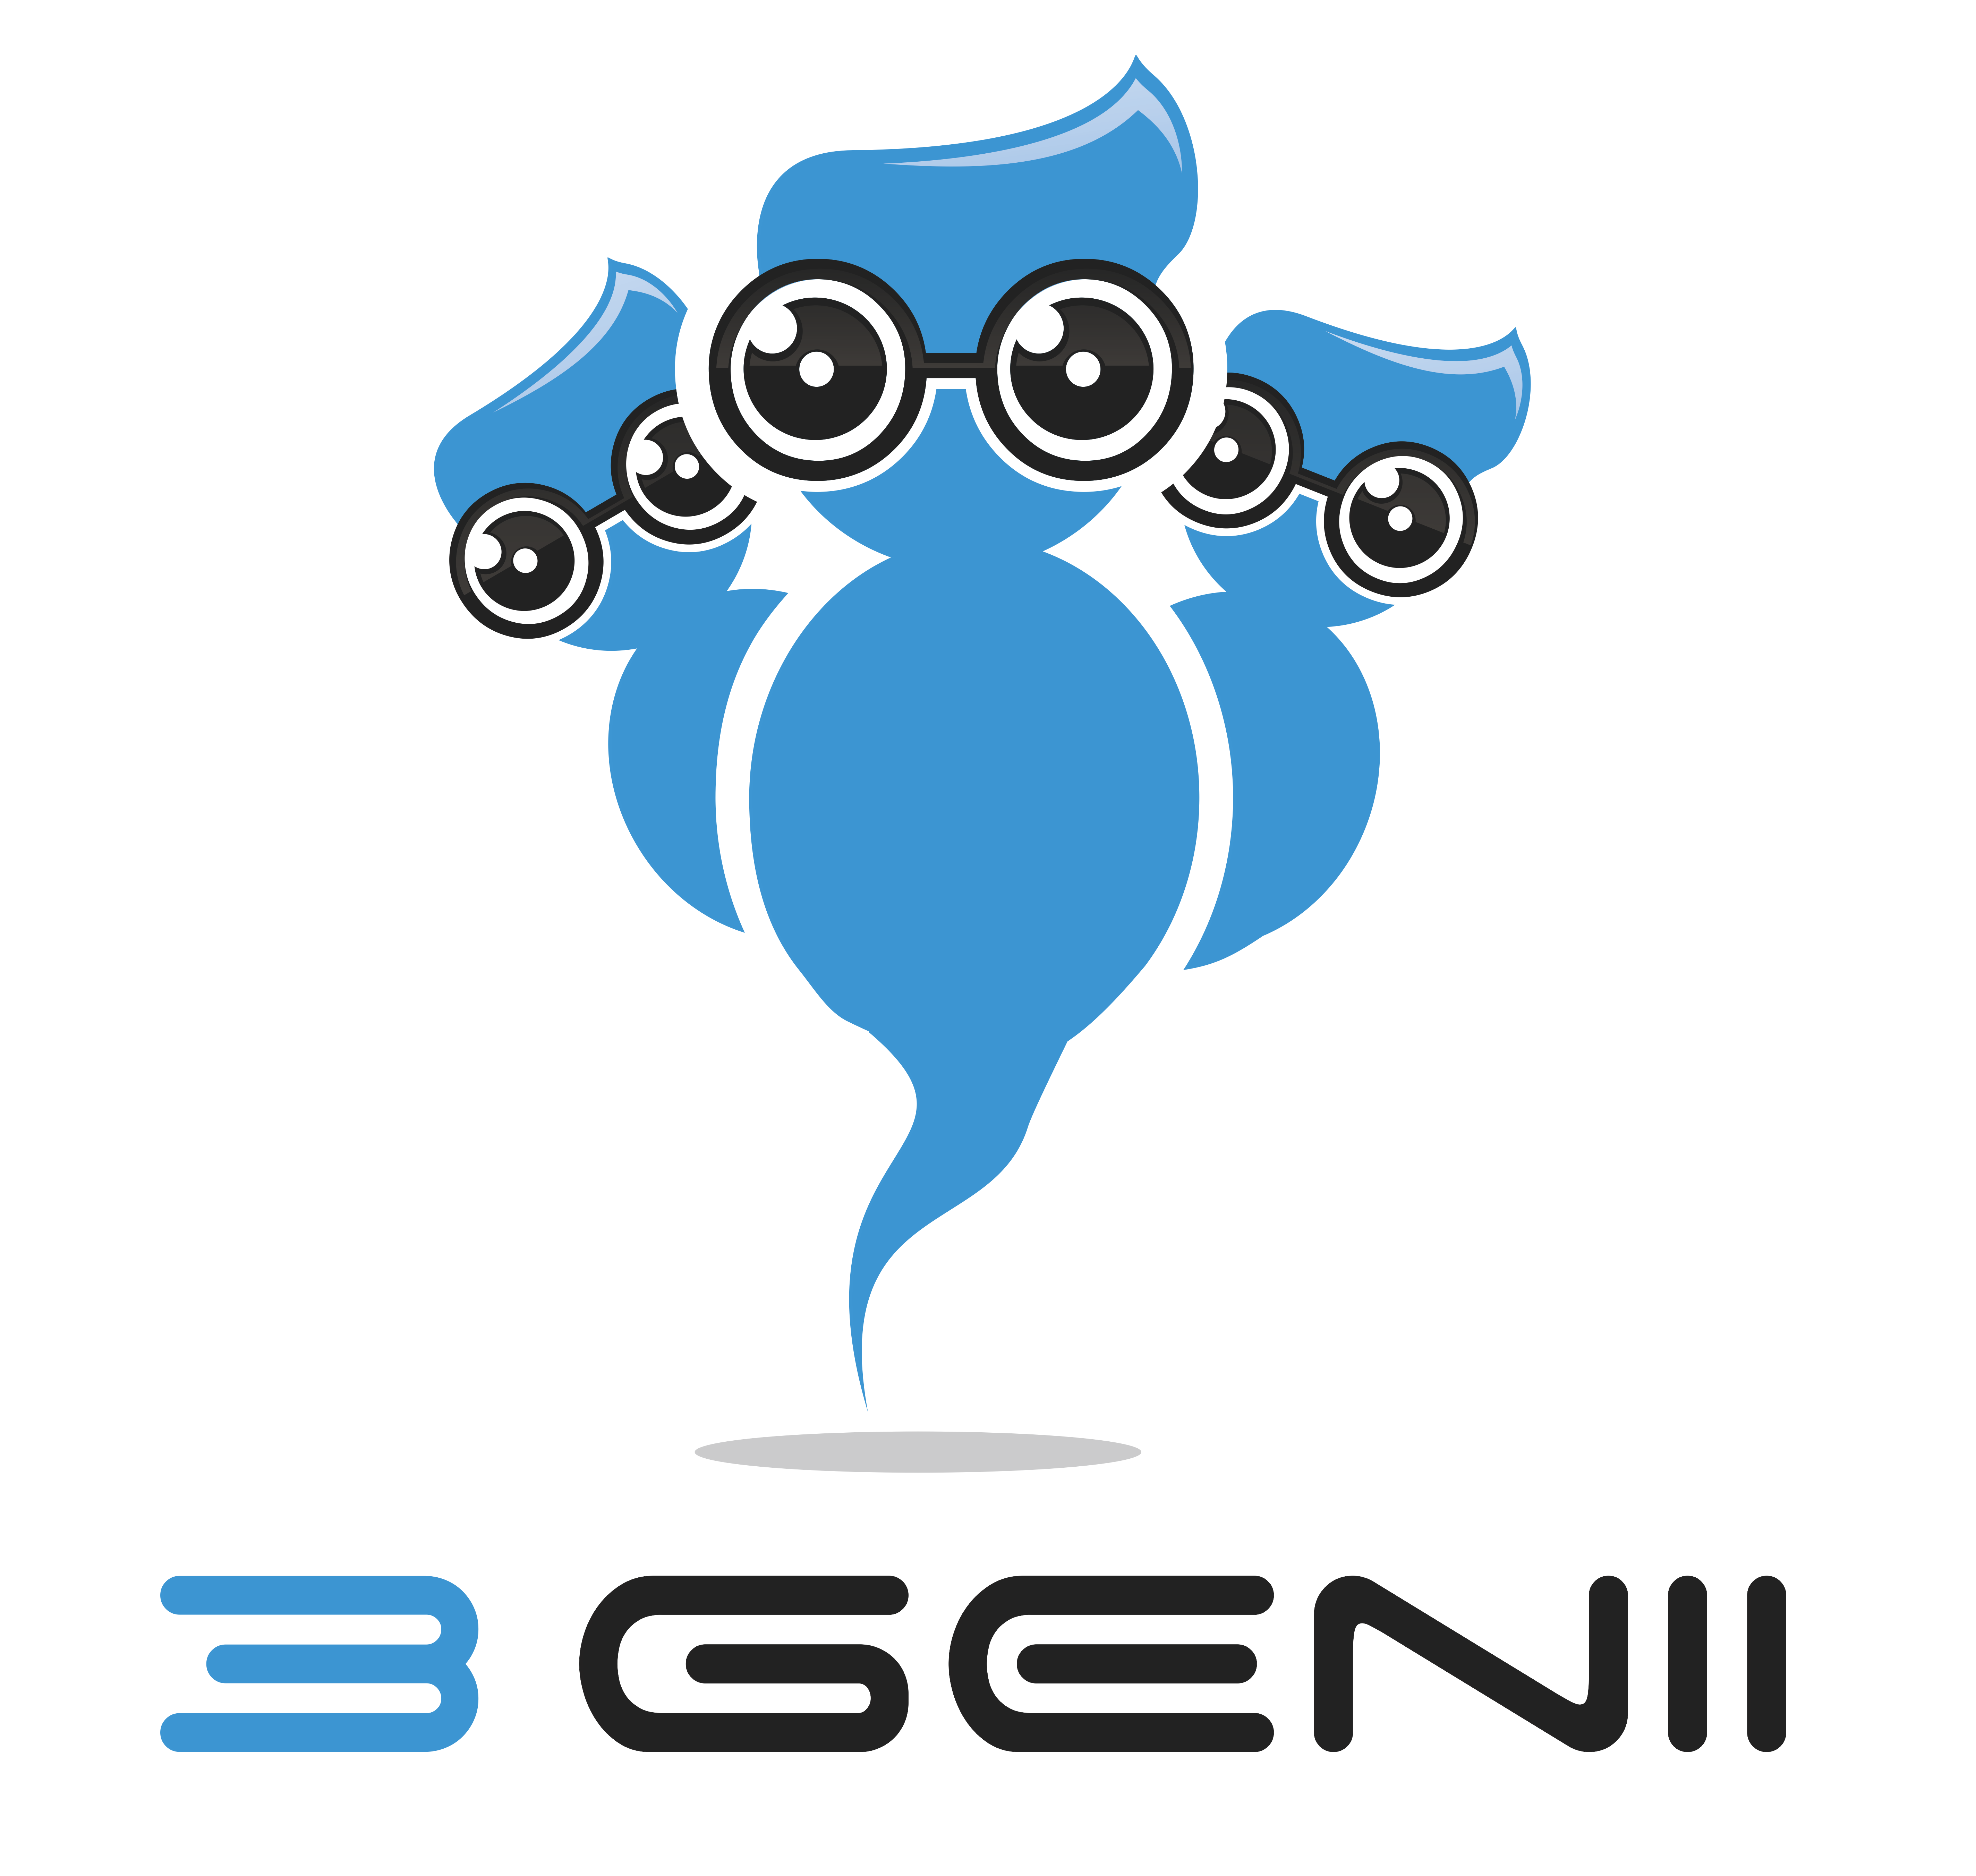 Creating a cool logo for a new startup: 3Genii